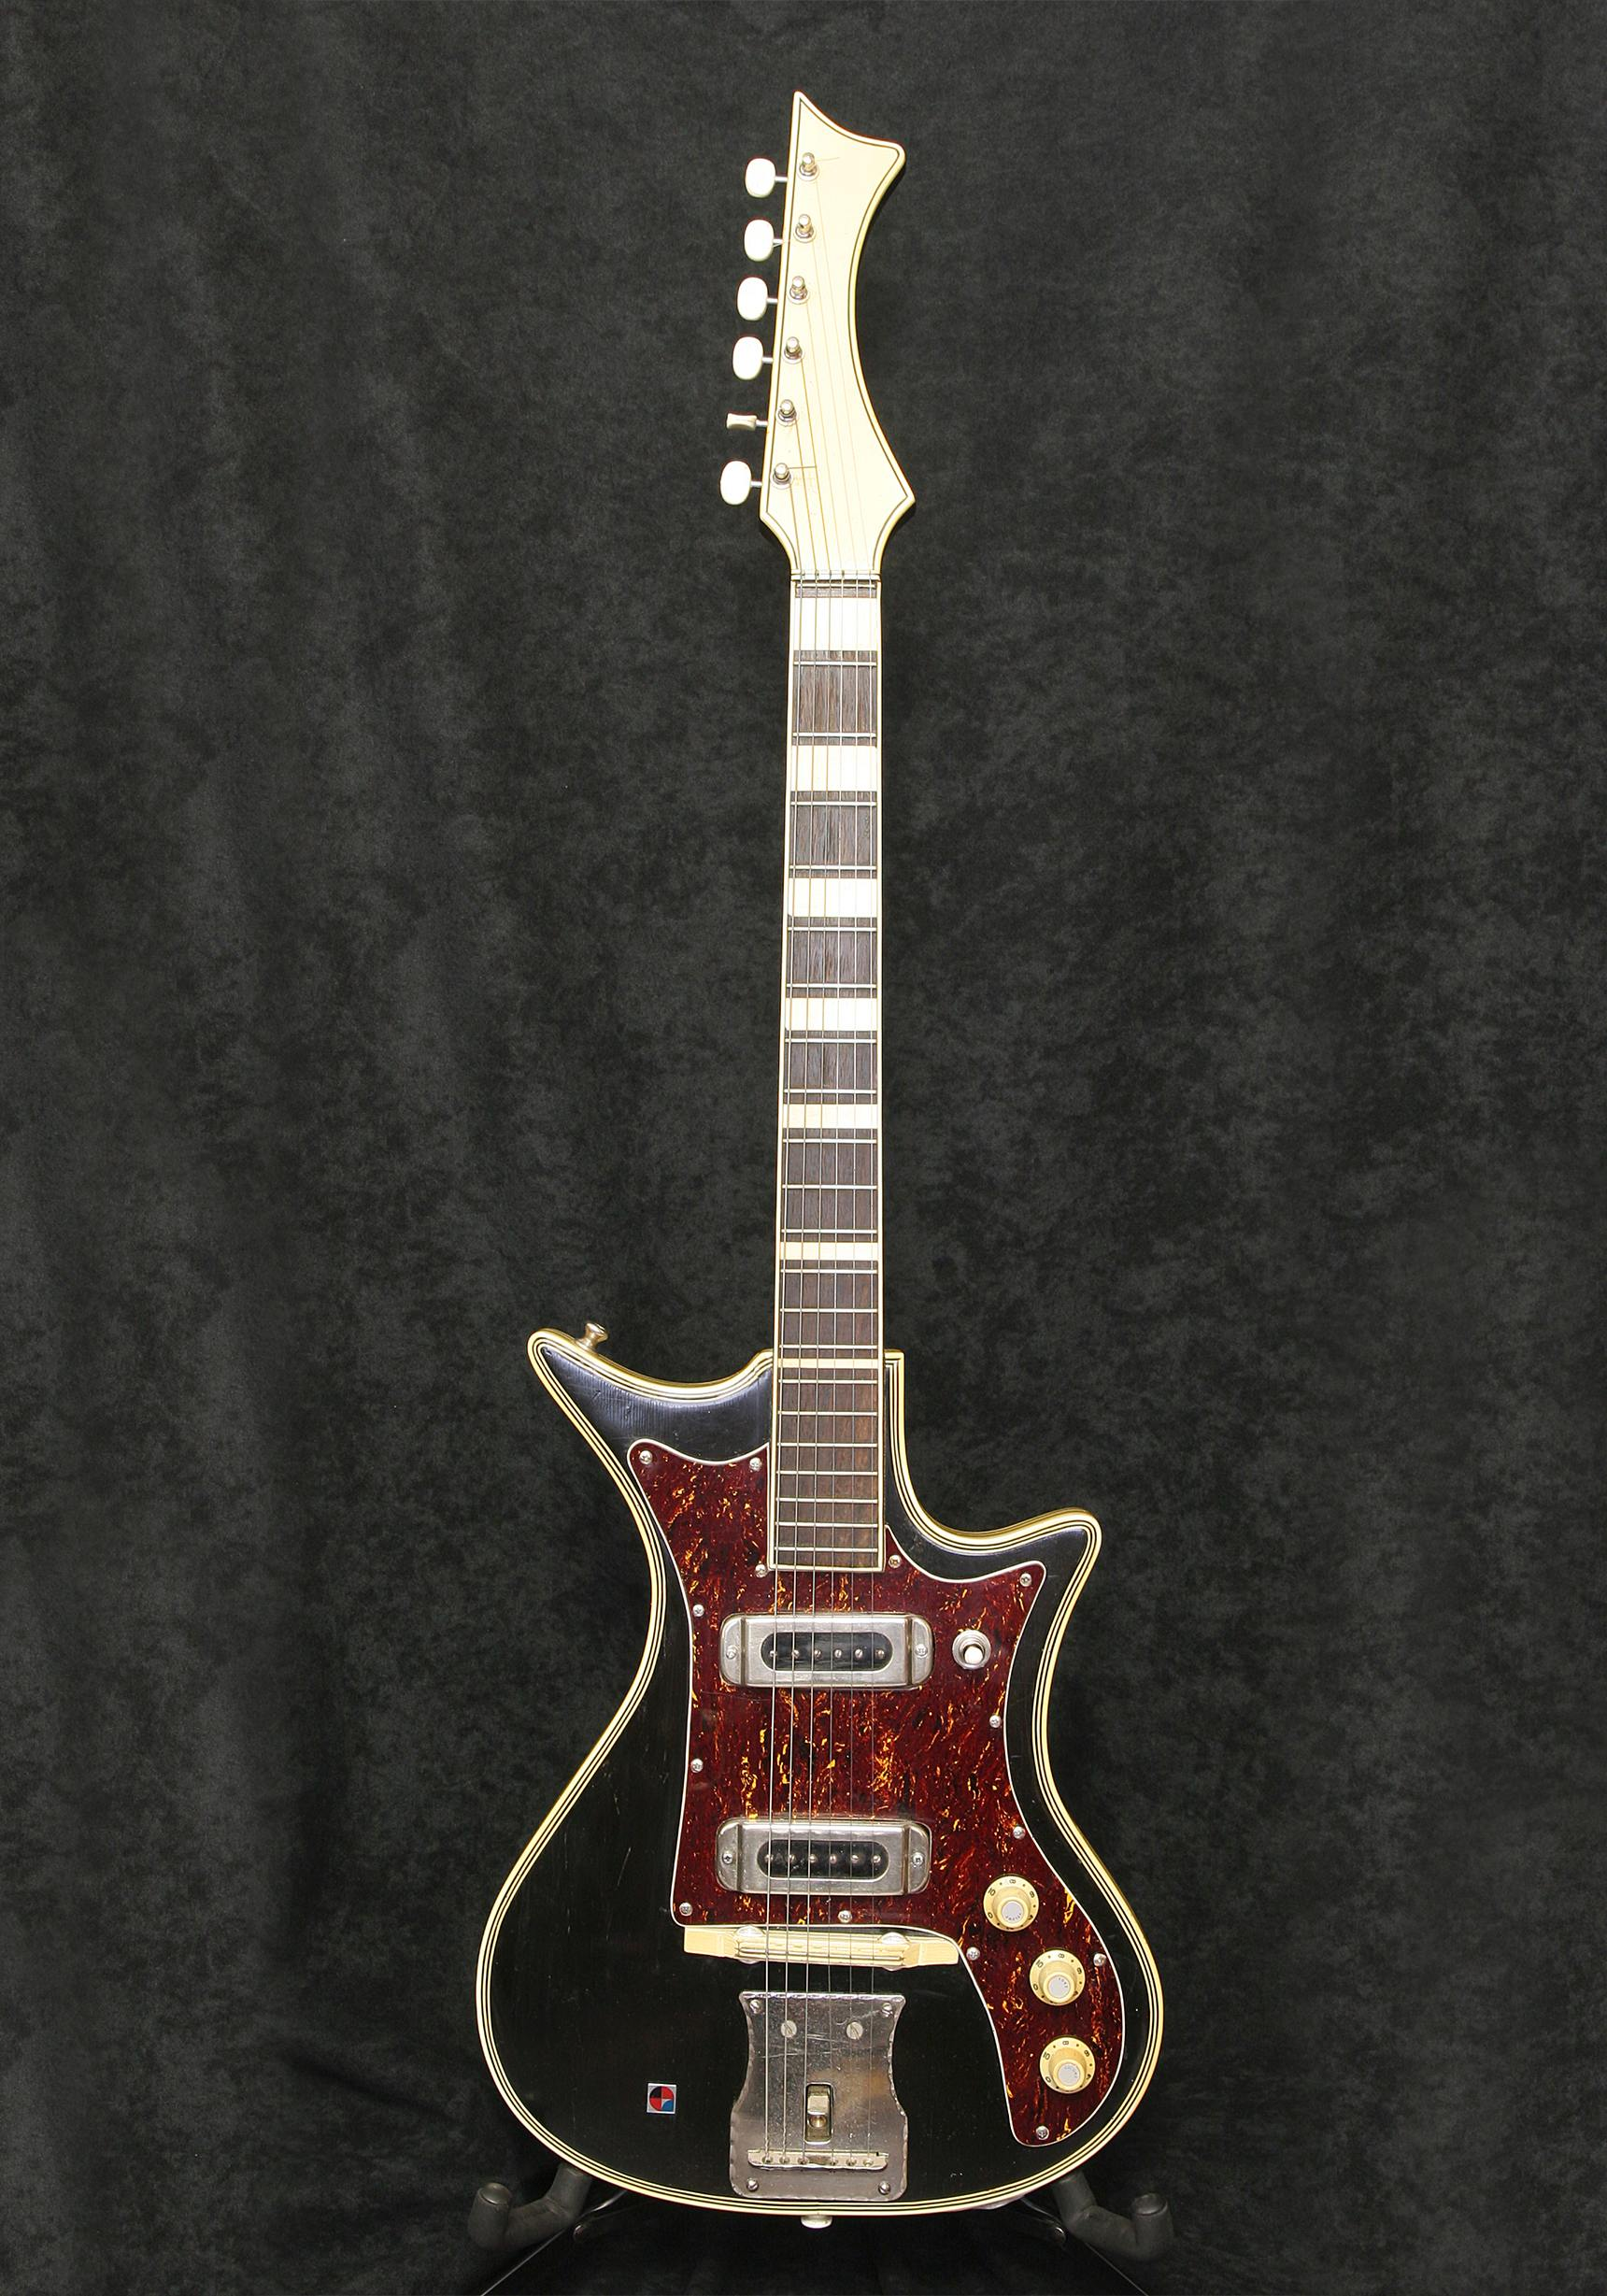 Marma Electric Guitar body front